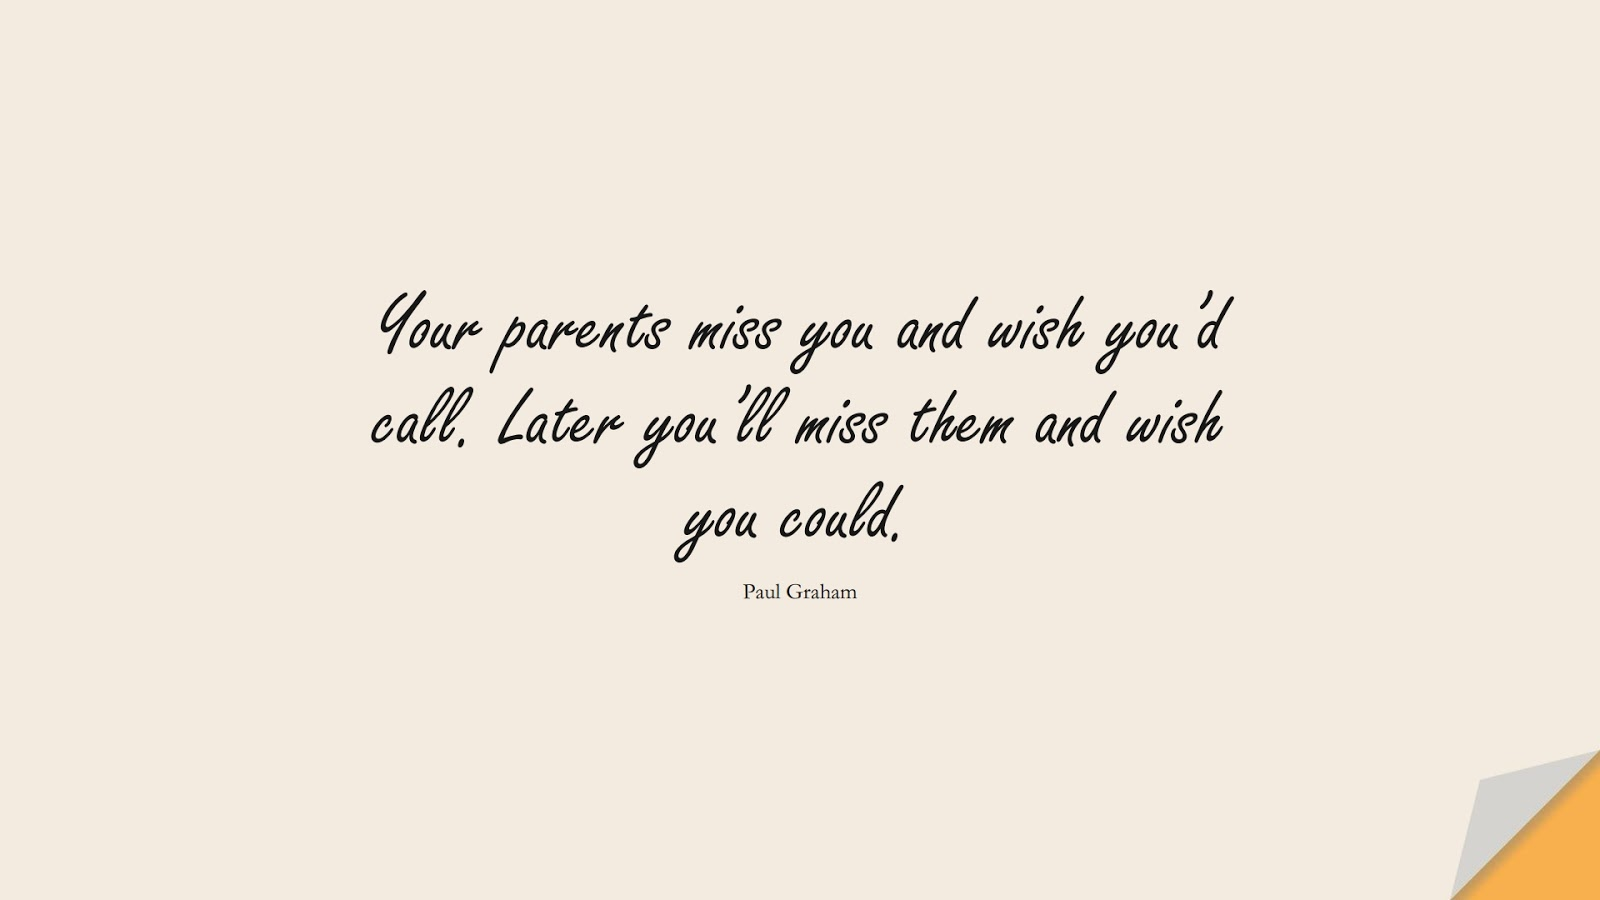 Your parents miss you and wish you'd call. Later you'll miss them and wish you could. (Paul Graham);  #FamilyQuotes